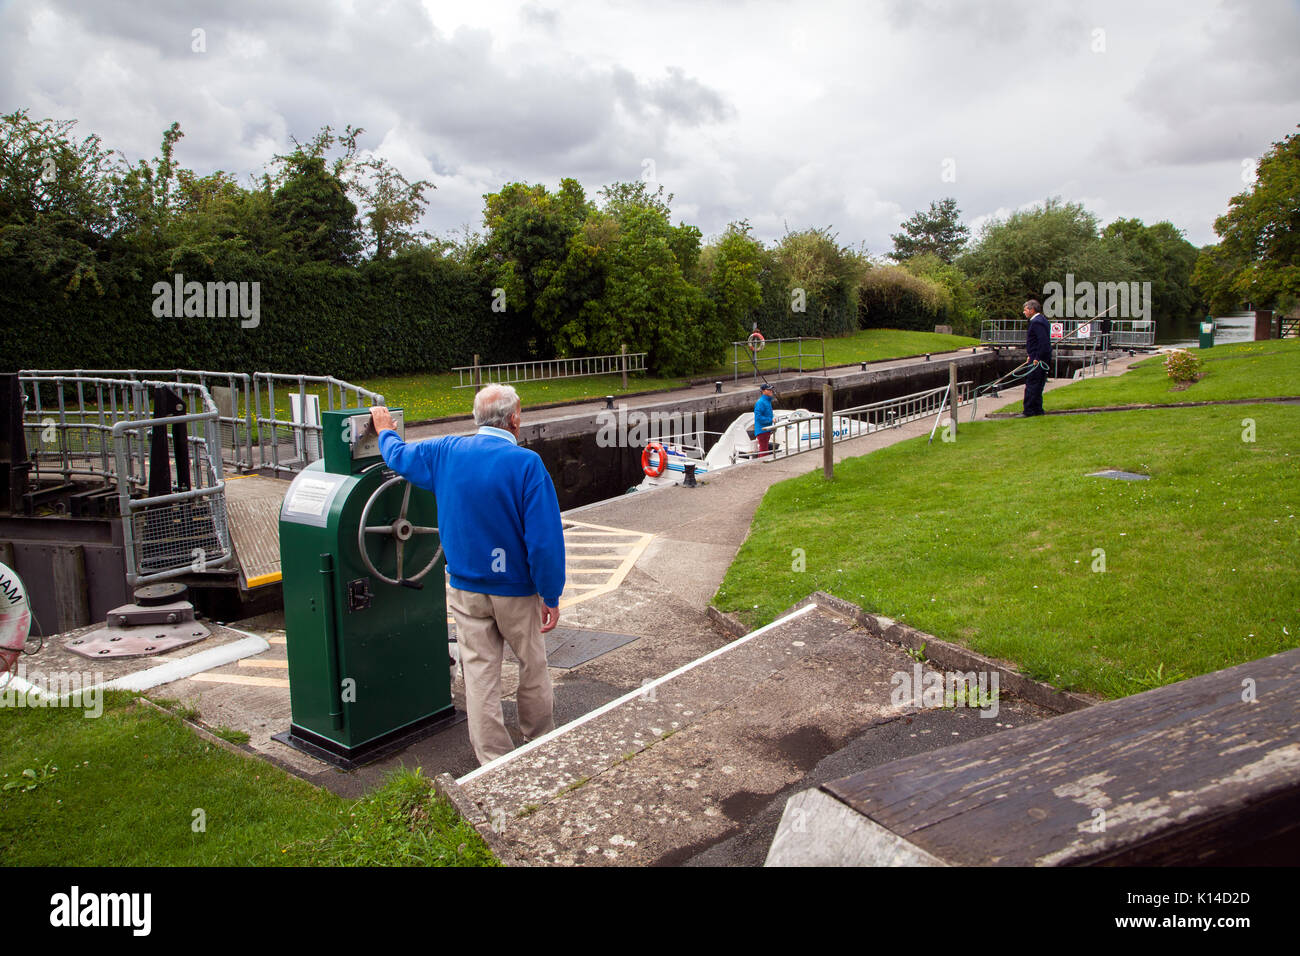 River Thames lock keeper operating the locks at Culham Lock, Culham in Oxfordshire - Stock Image